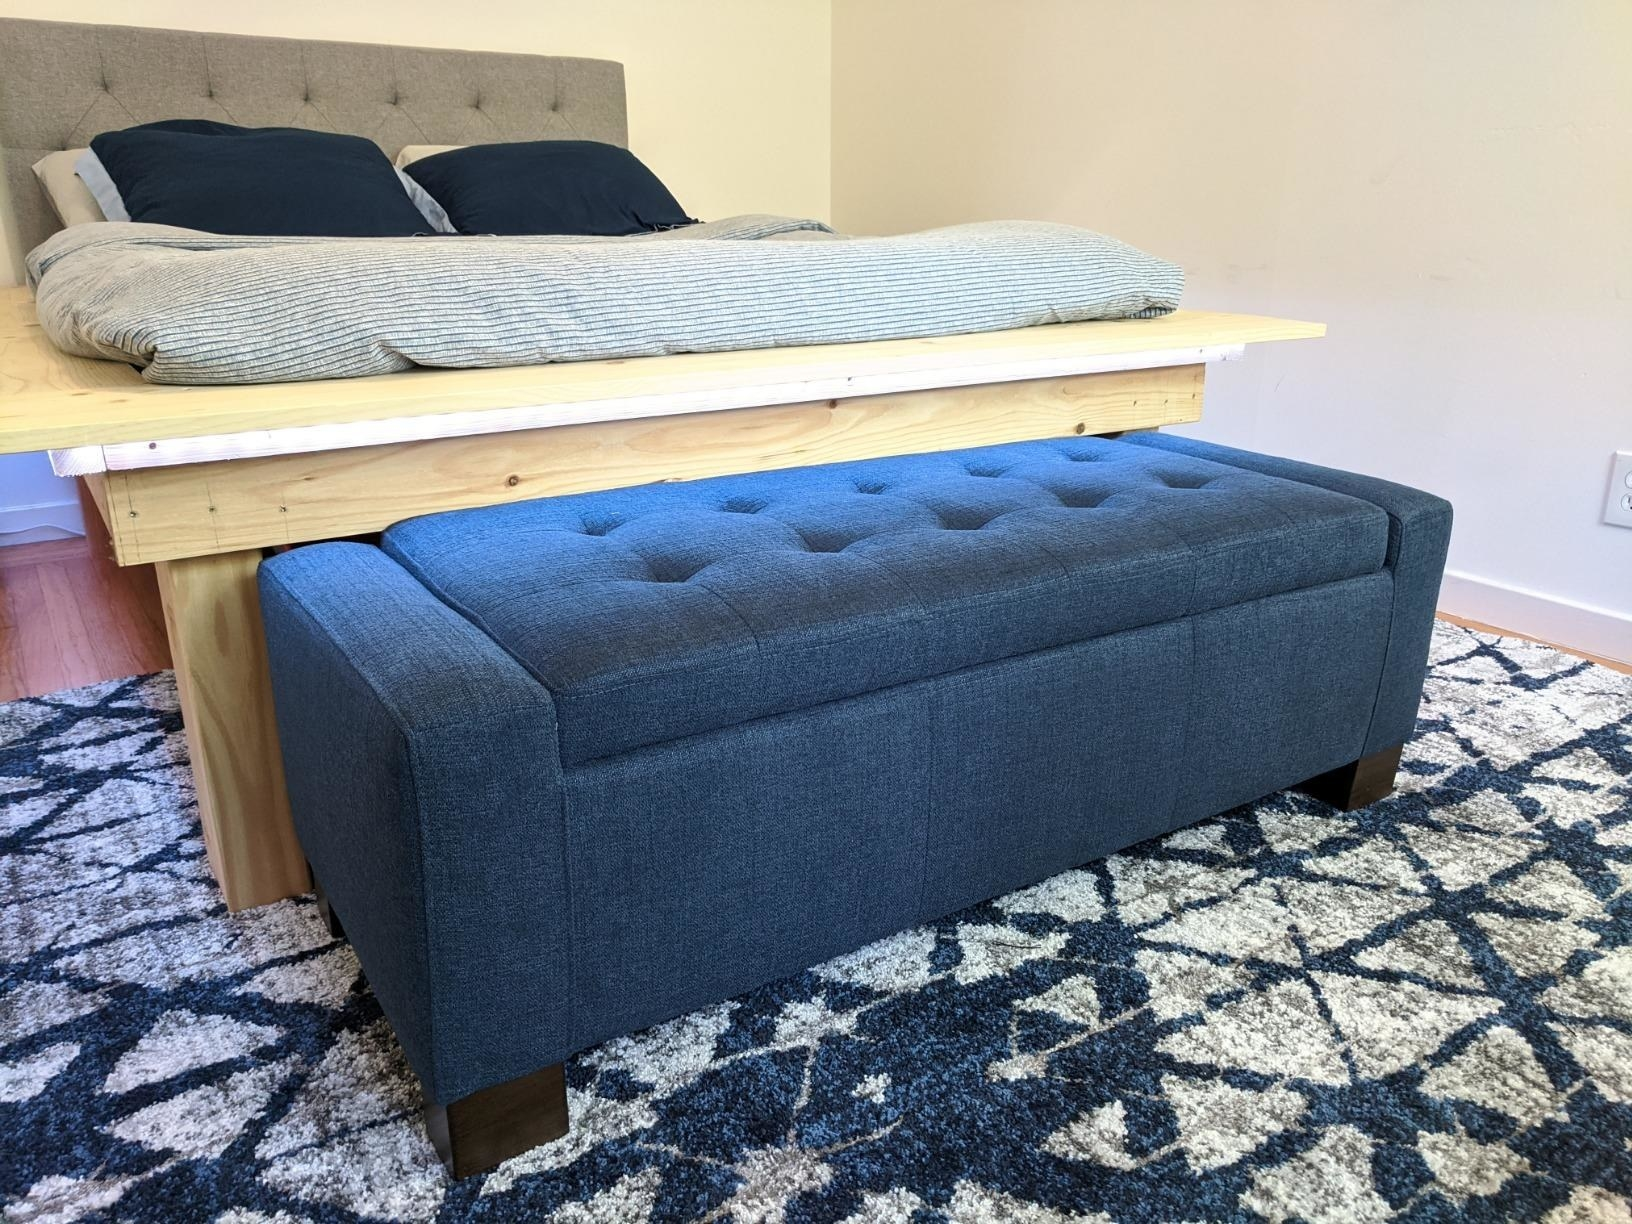 reviewer image of the tufted fabric midnight blue ottoman at the foot of a wooden bed